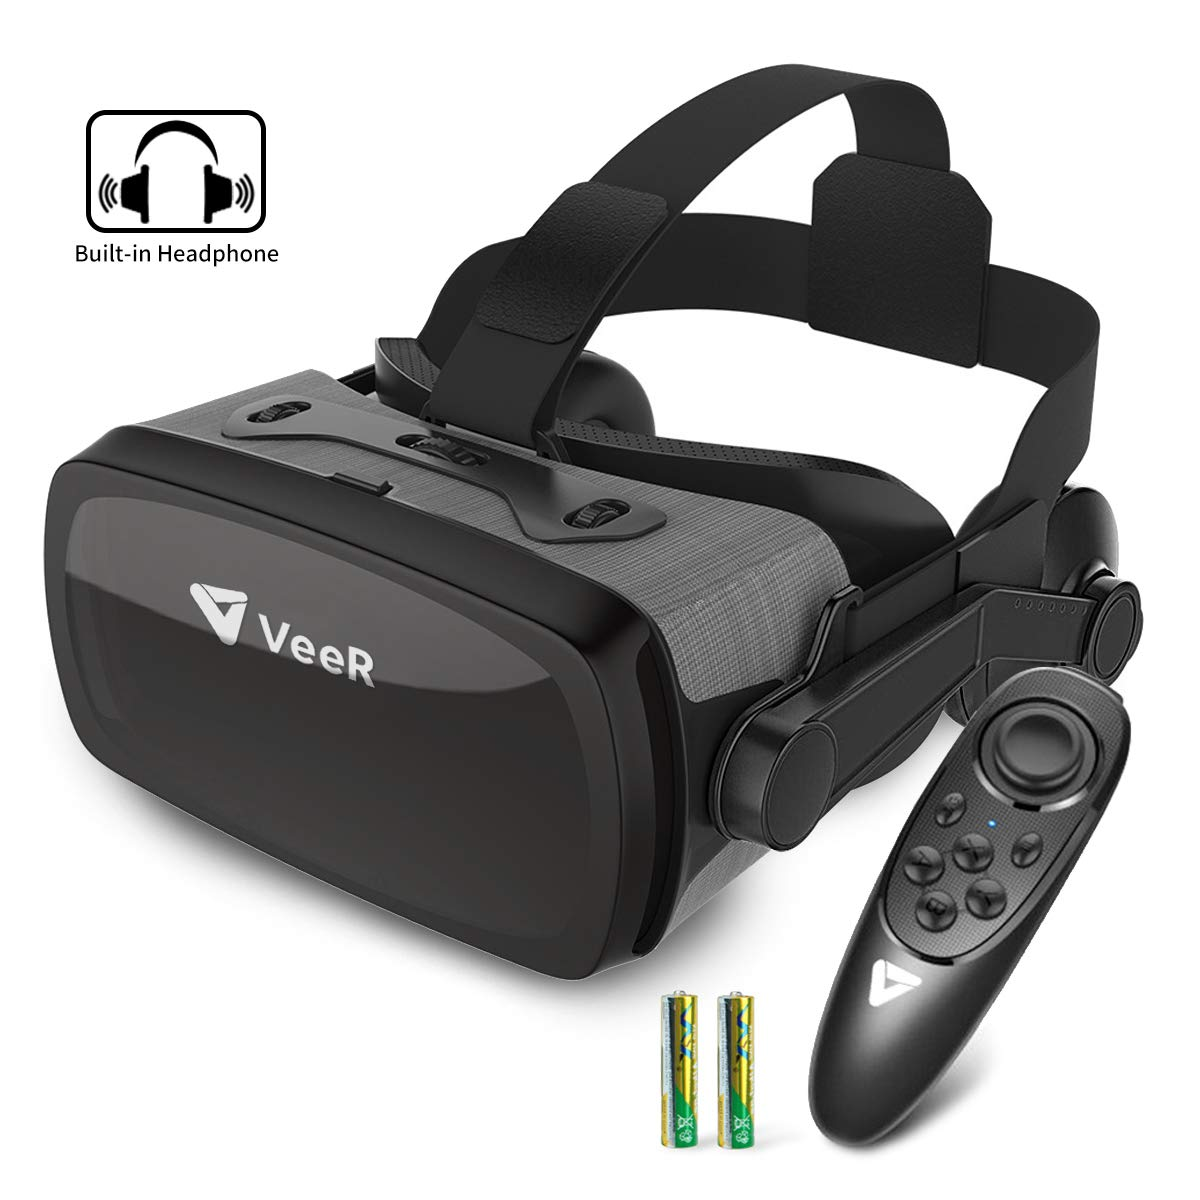 VeeR Falcon VR Headset with Controller, Eye Protection Virtual Reality Goggles to Comfortable Watch 360 Movies for Android, Samsung Galaxy, Huawei and iPhone XR & Xs Max by VeeR